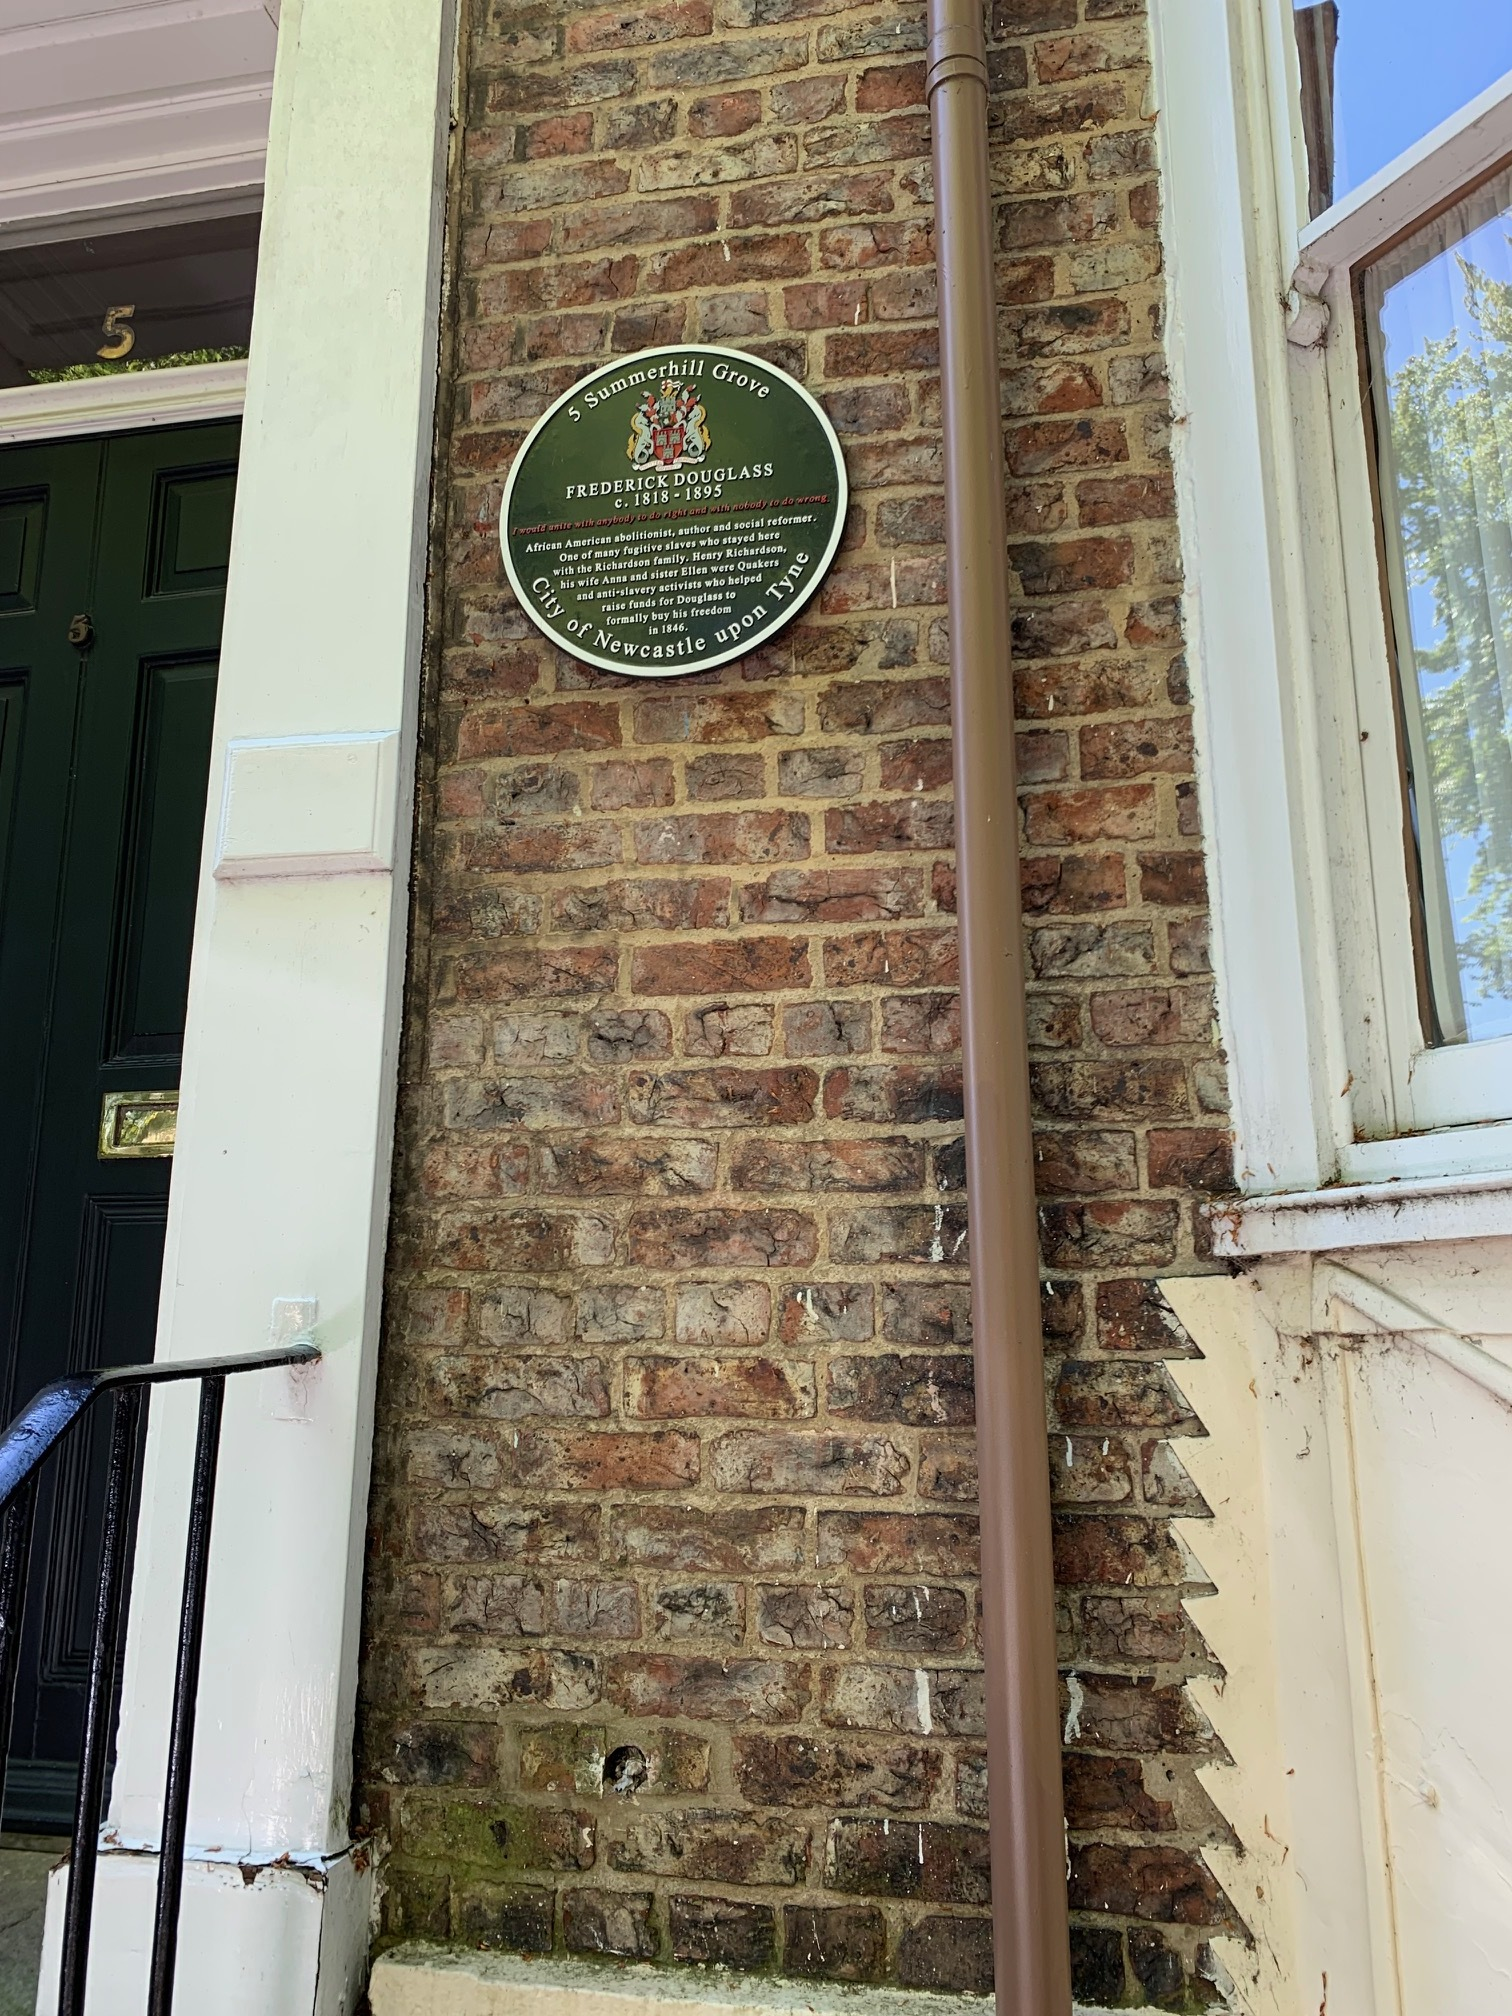 The plaque honoring Frederick Douglass outside the residence where he stayed during his time in newcastle upon Tyne.